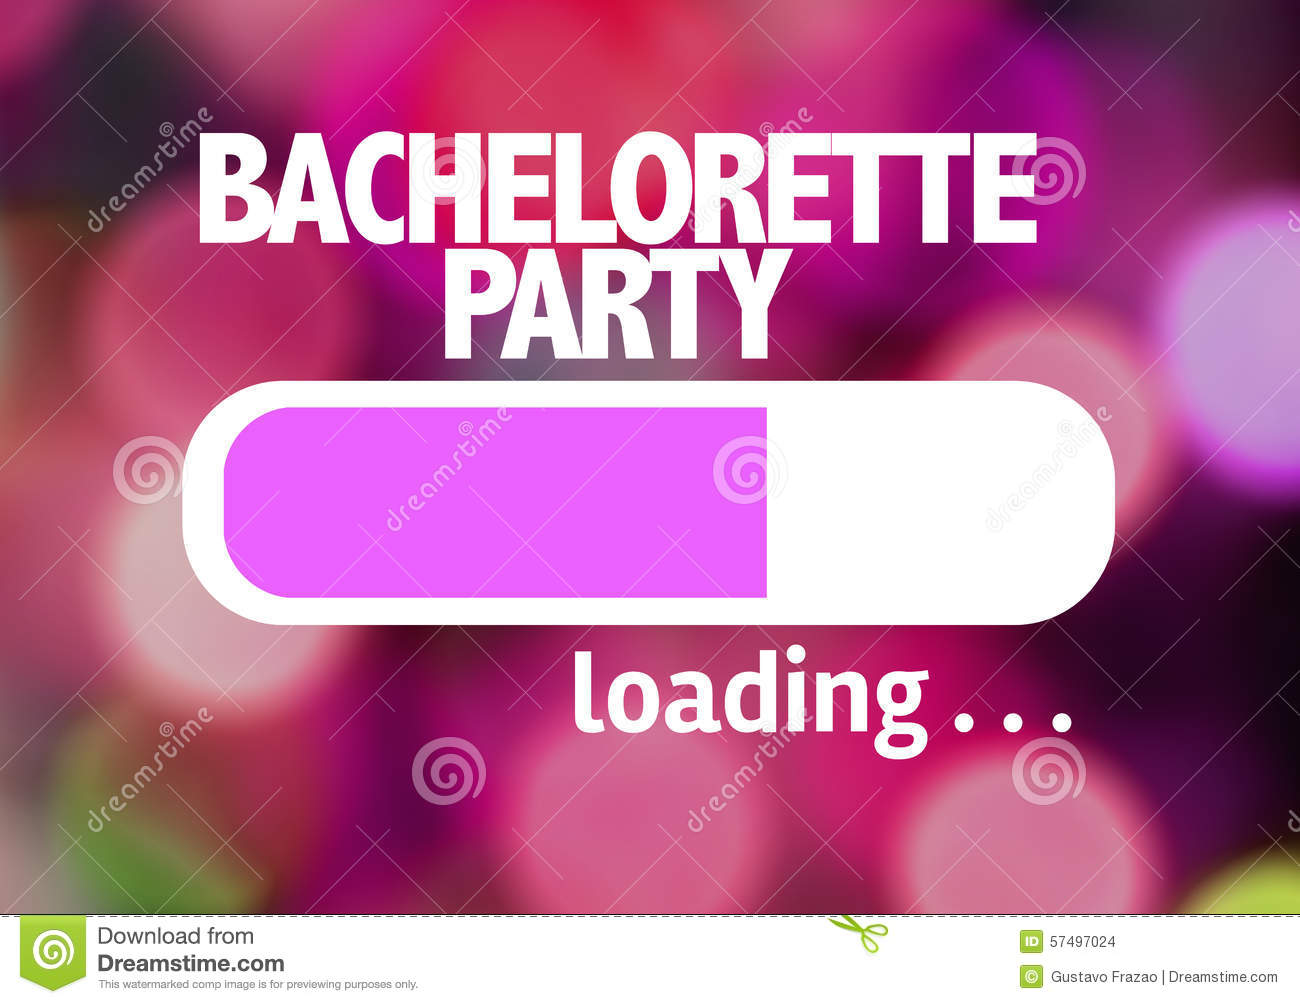 Progress Bar Loading With The Text Bachelorette Party